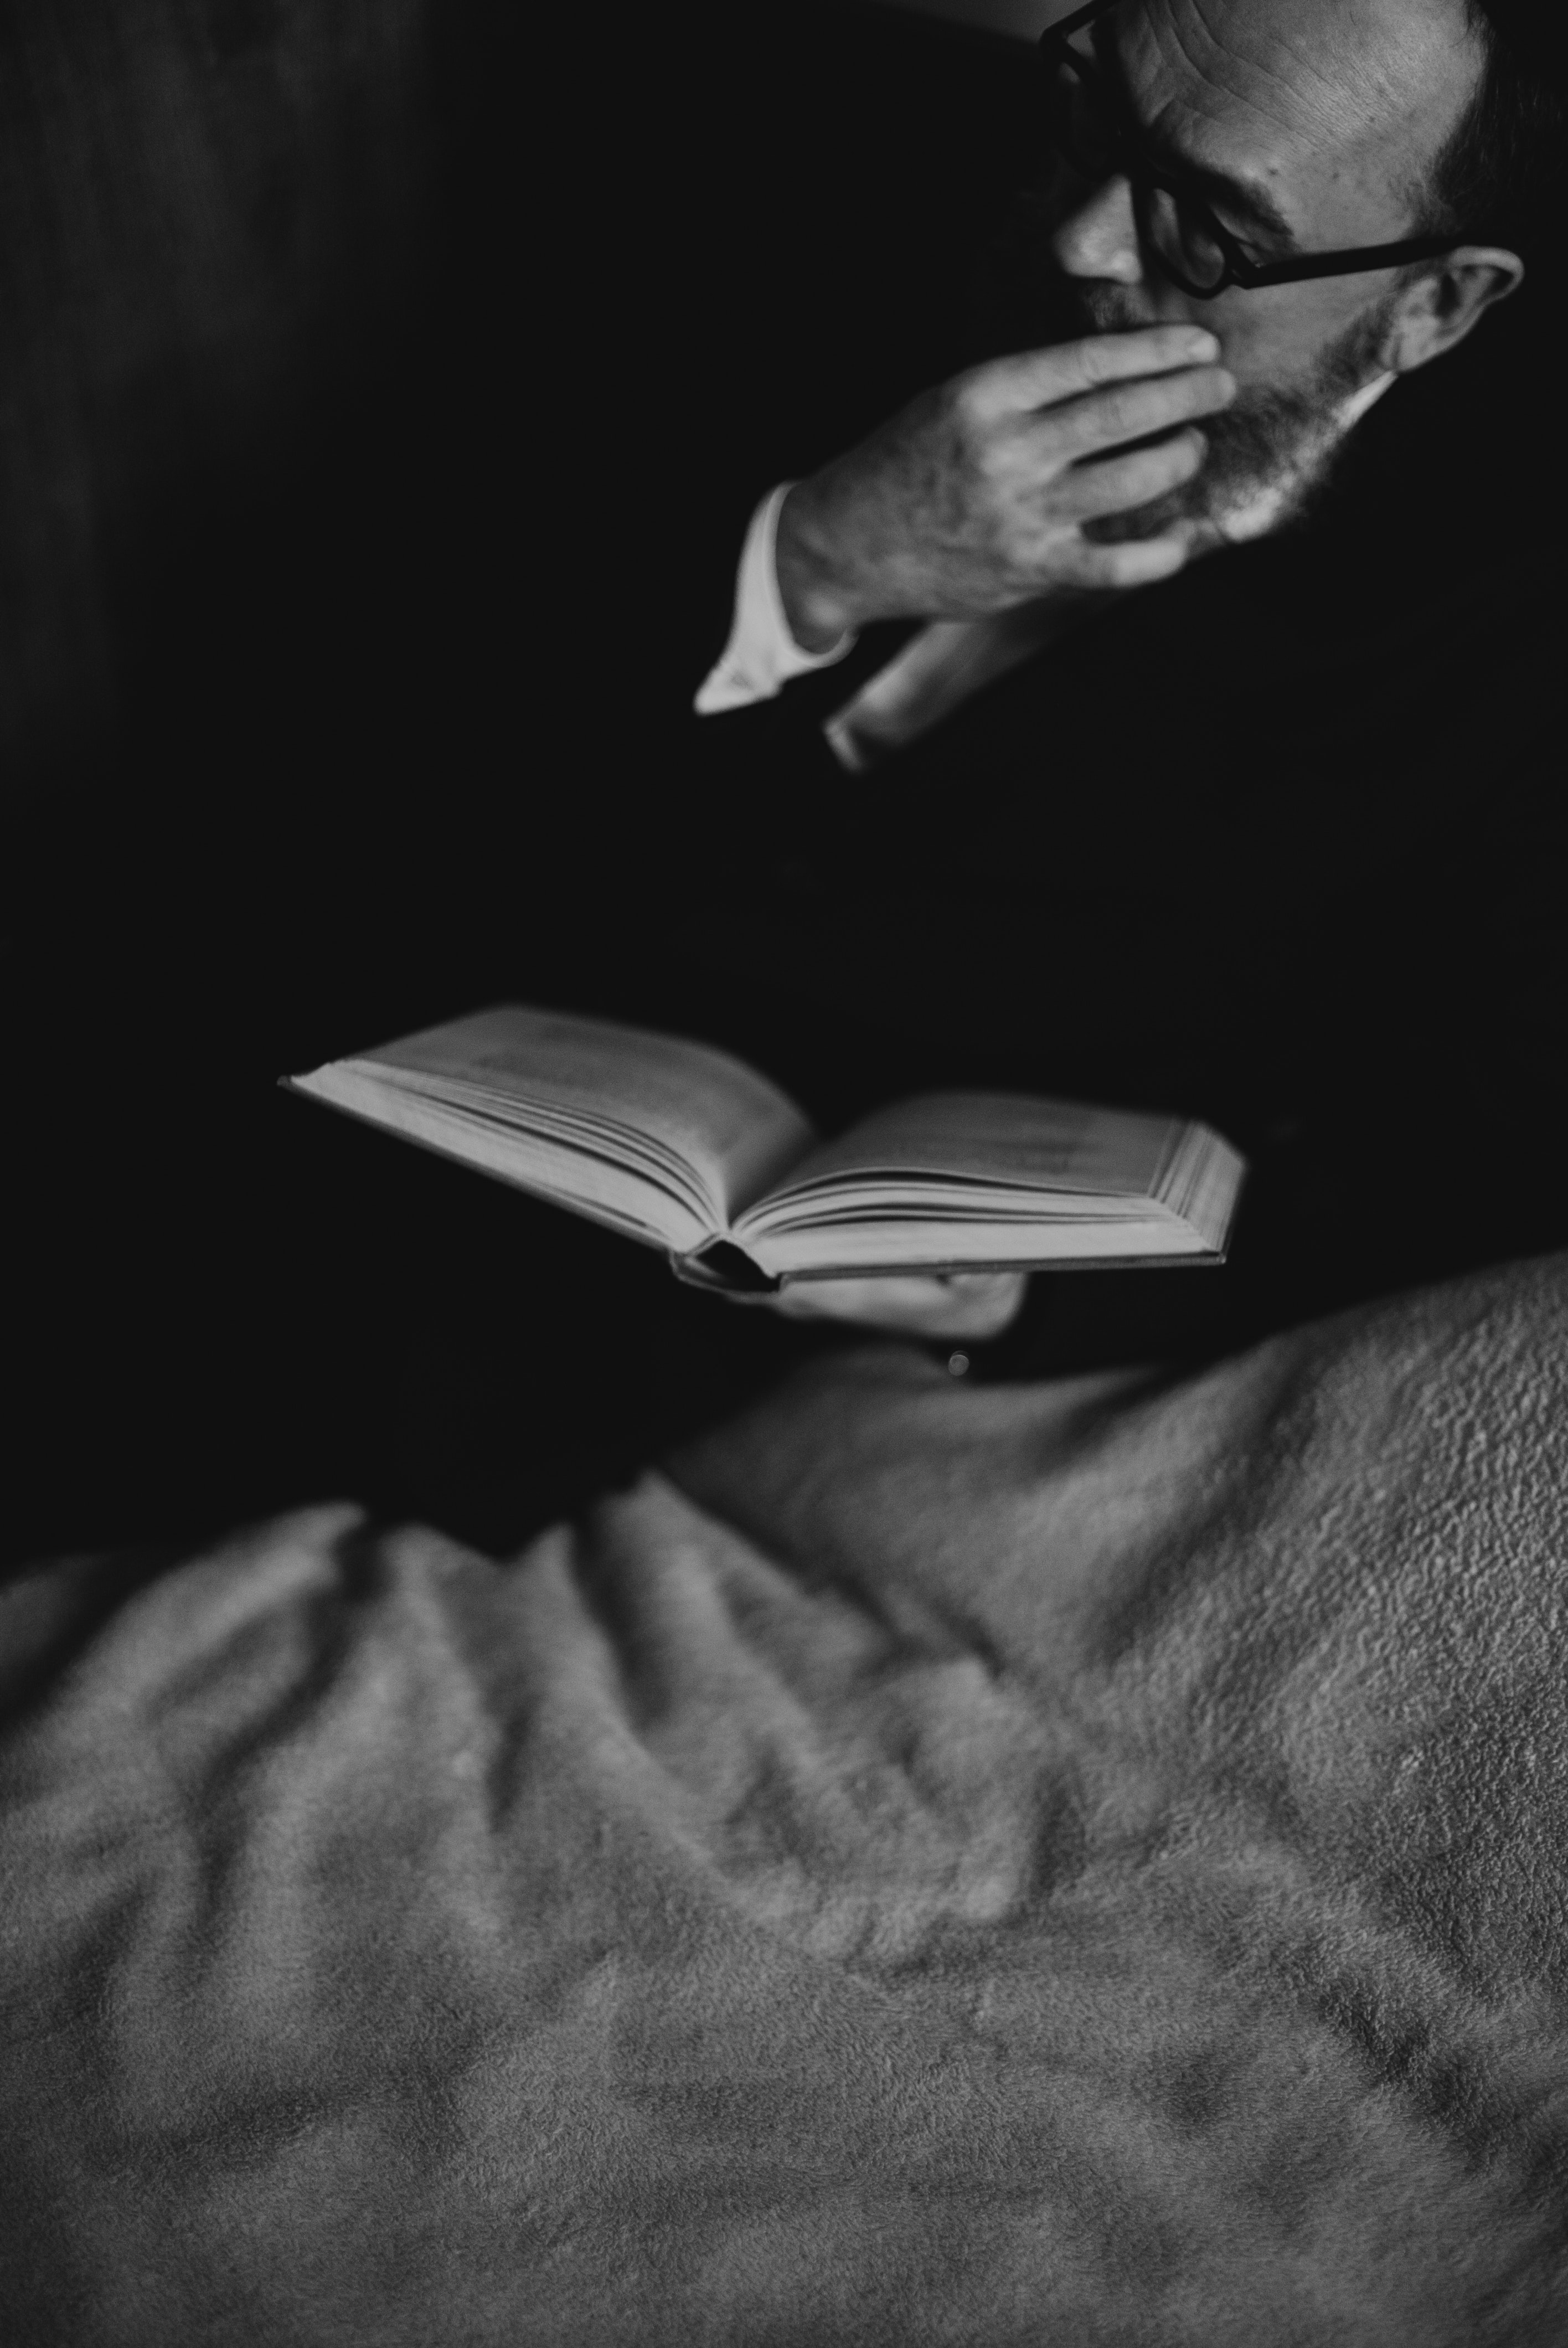 bearded-man-holding-a-book-4033948